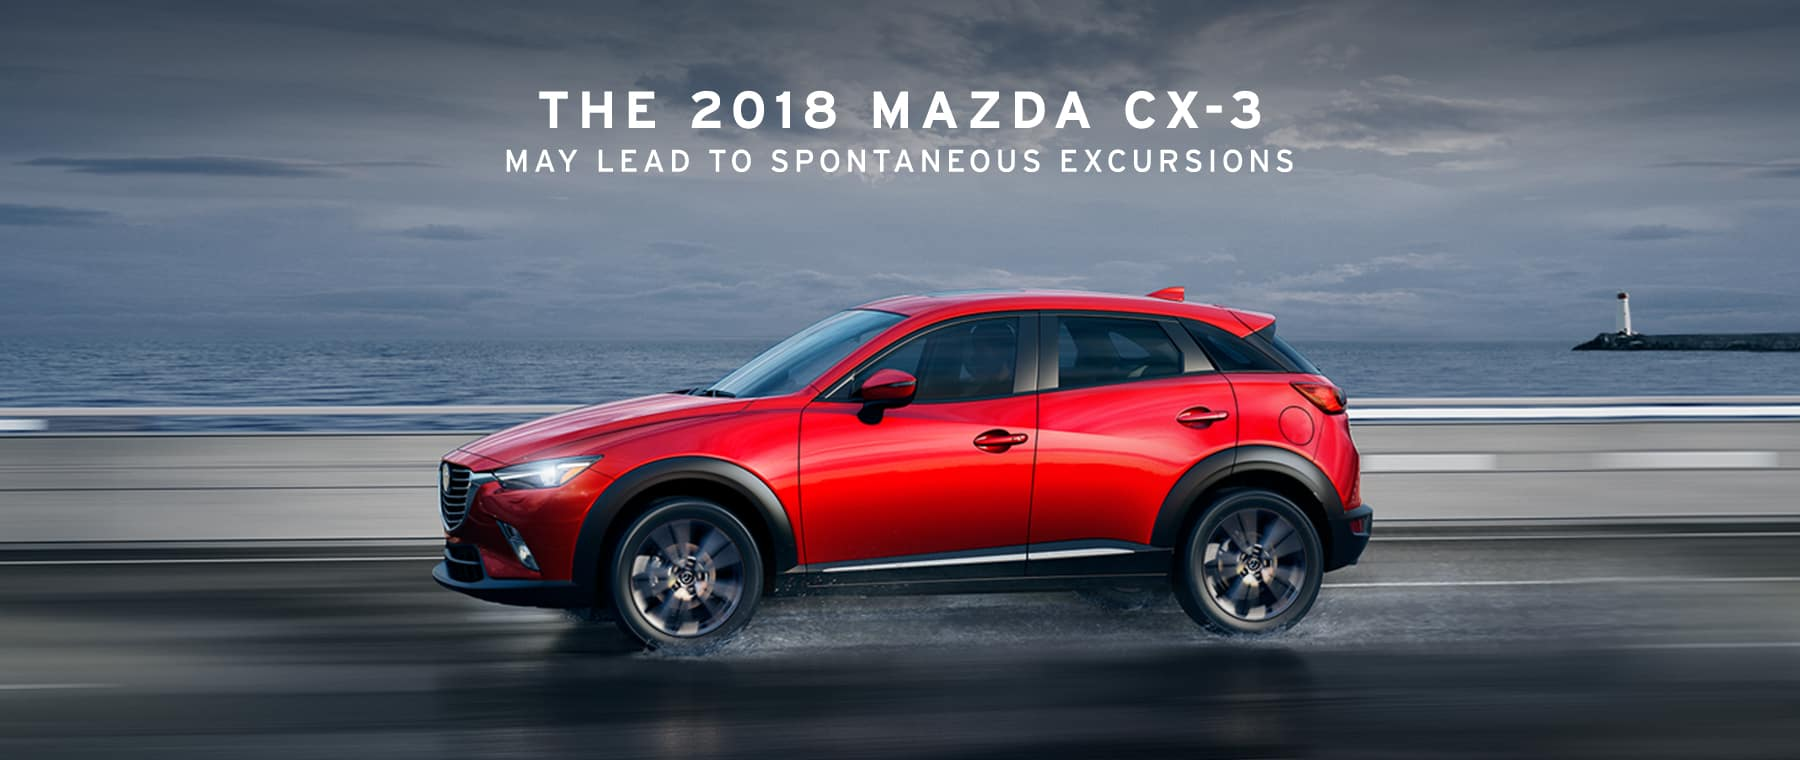 Anderson mazda of lincoln mazda dealer in lincoln ne new vehicles used vehicles cpo vehicles fandeluxe Gallery